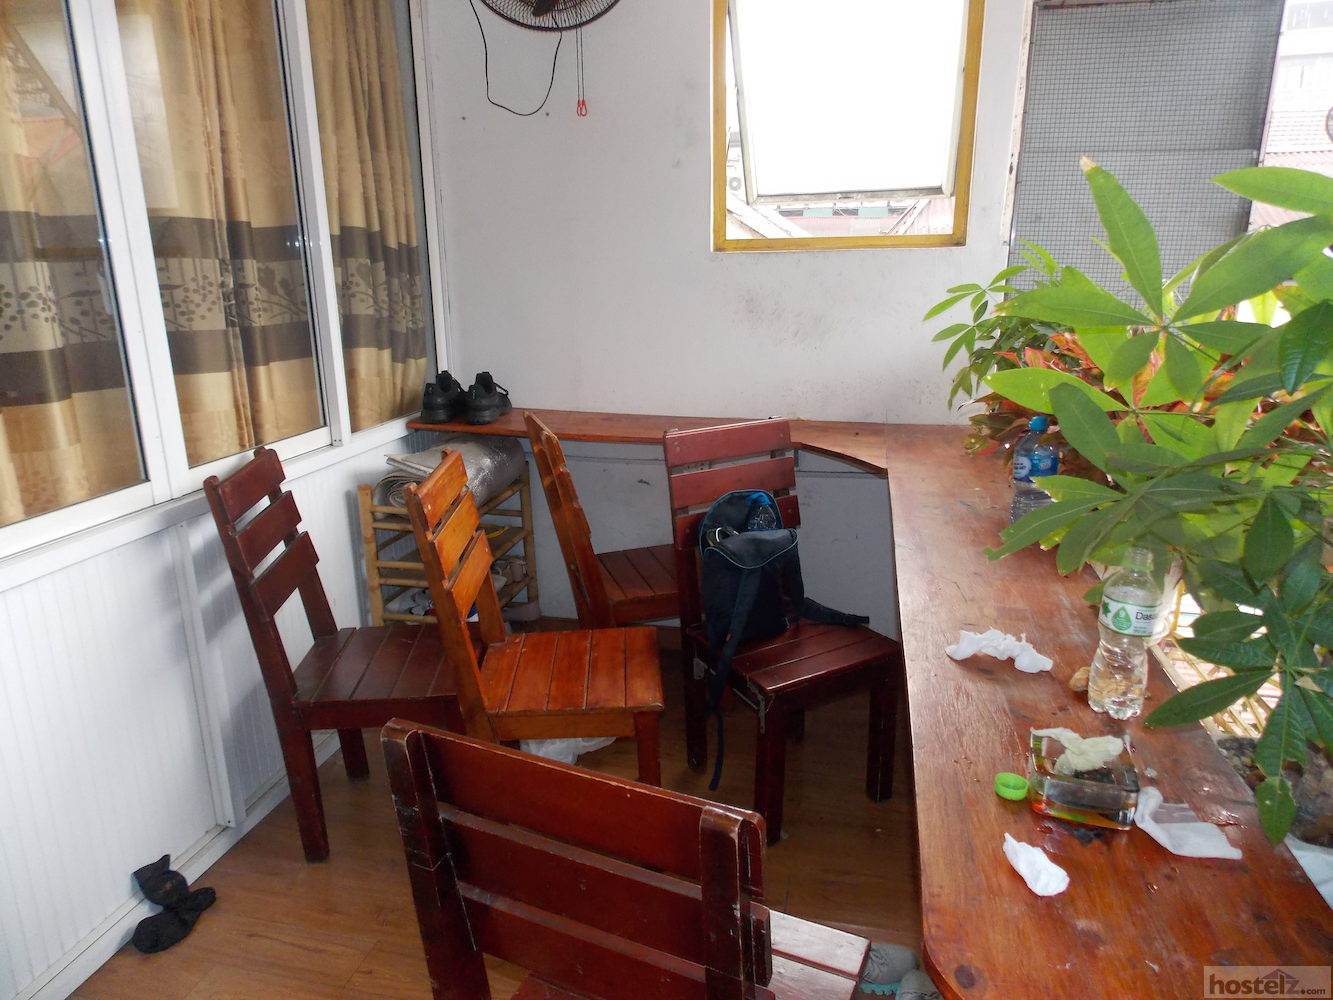 Meow Hostel In Hanoi Prices 2020 How To Compare